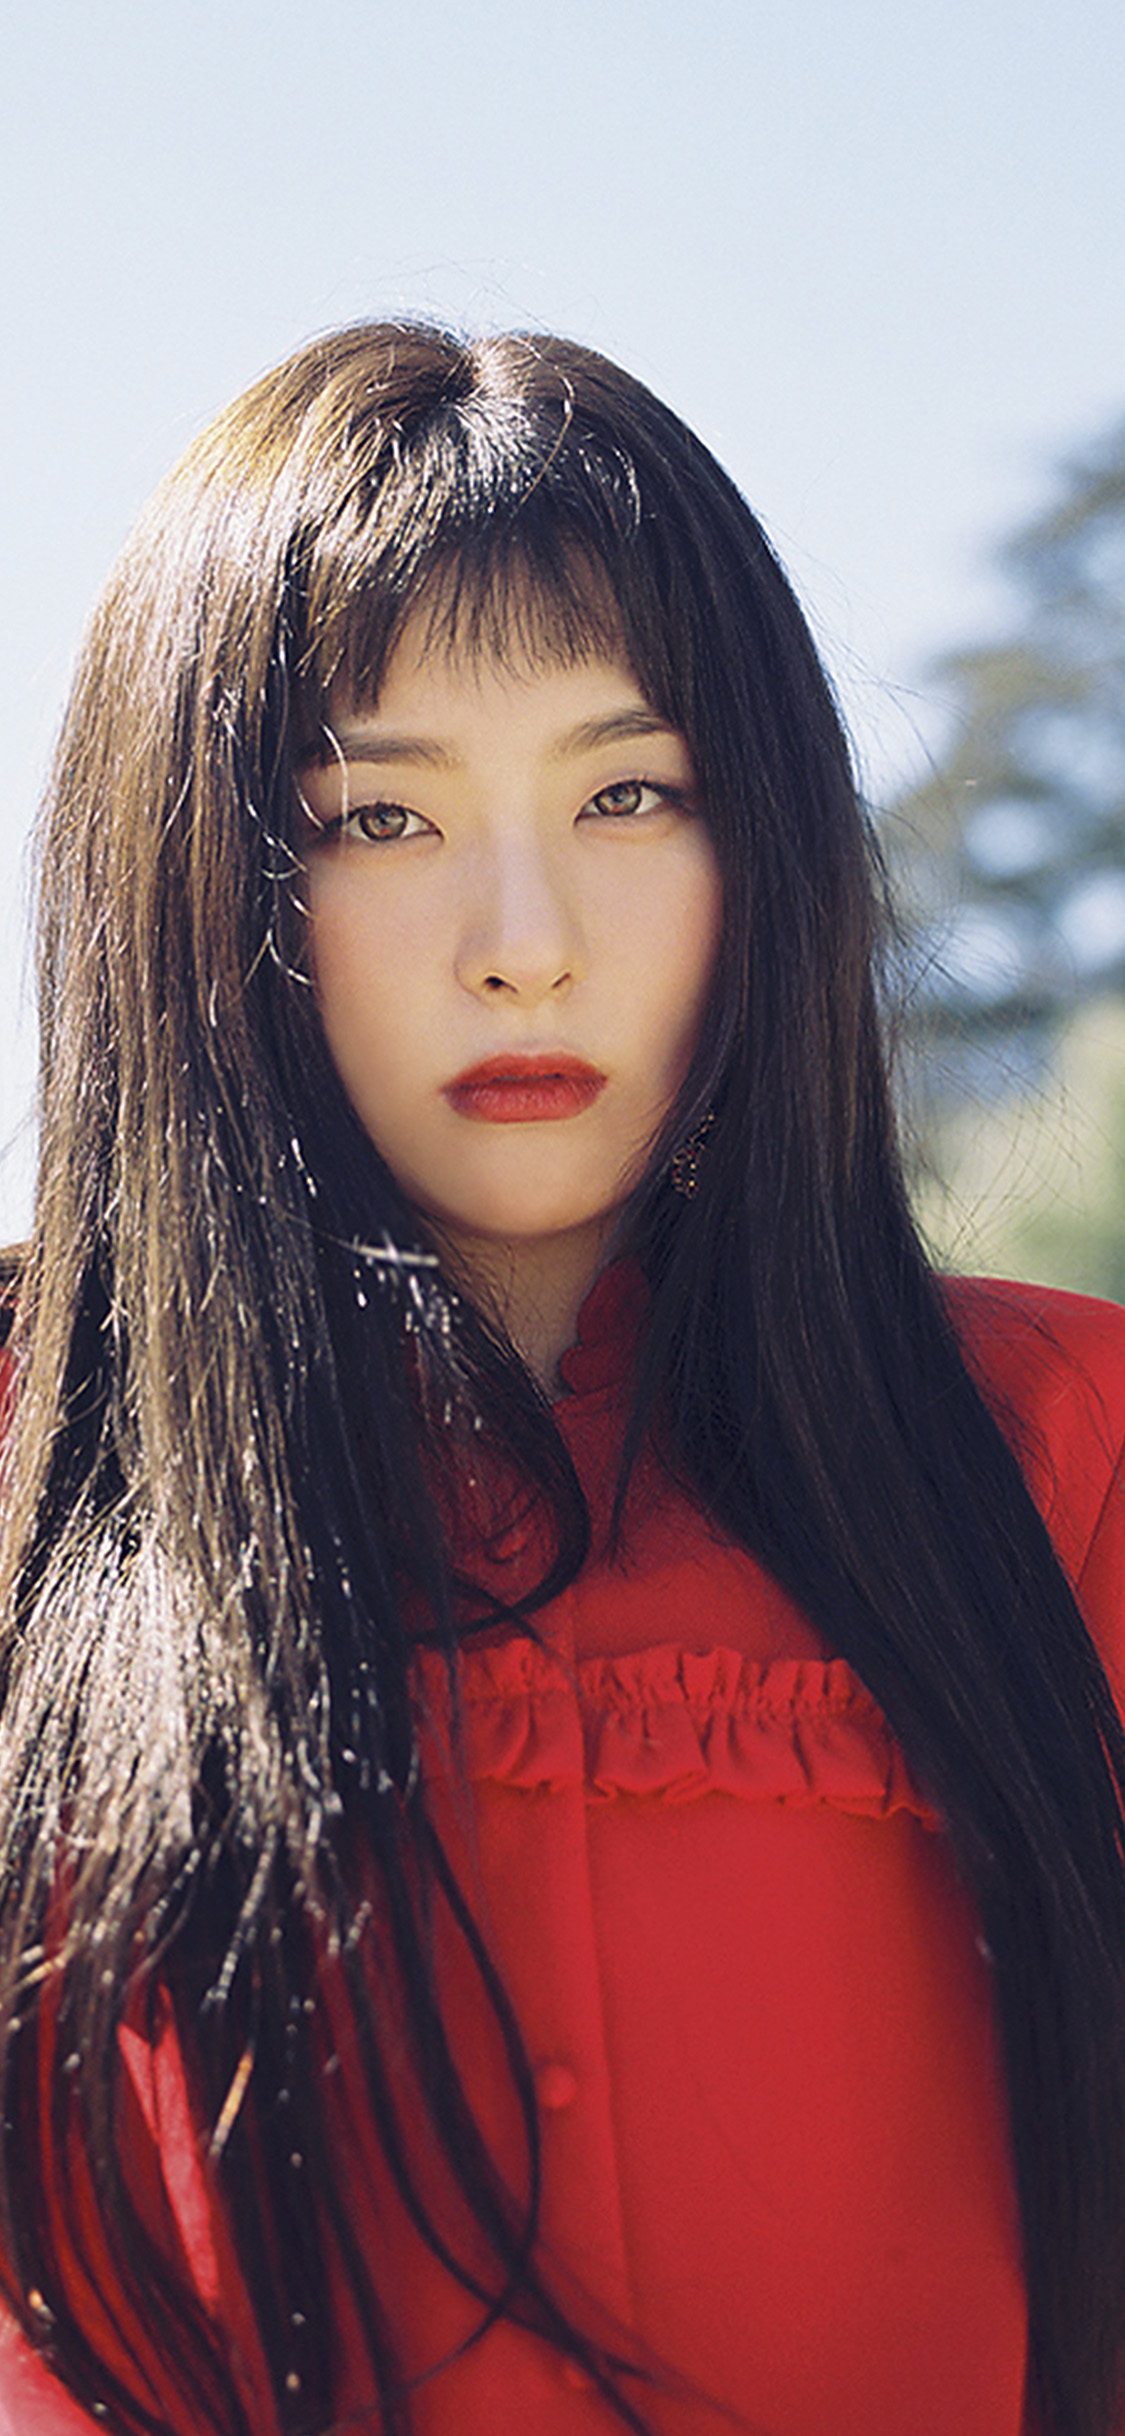 iPhonexpapers.com-Apple-iPhone-wallpaper-ho85-kpop-girl-red-dress